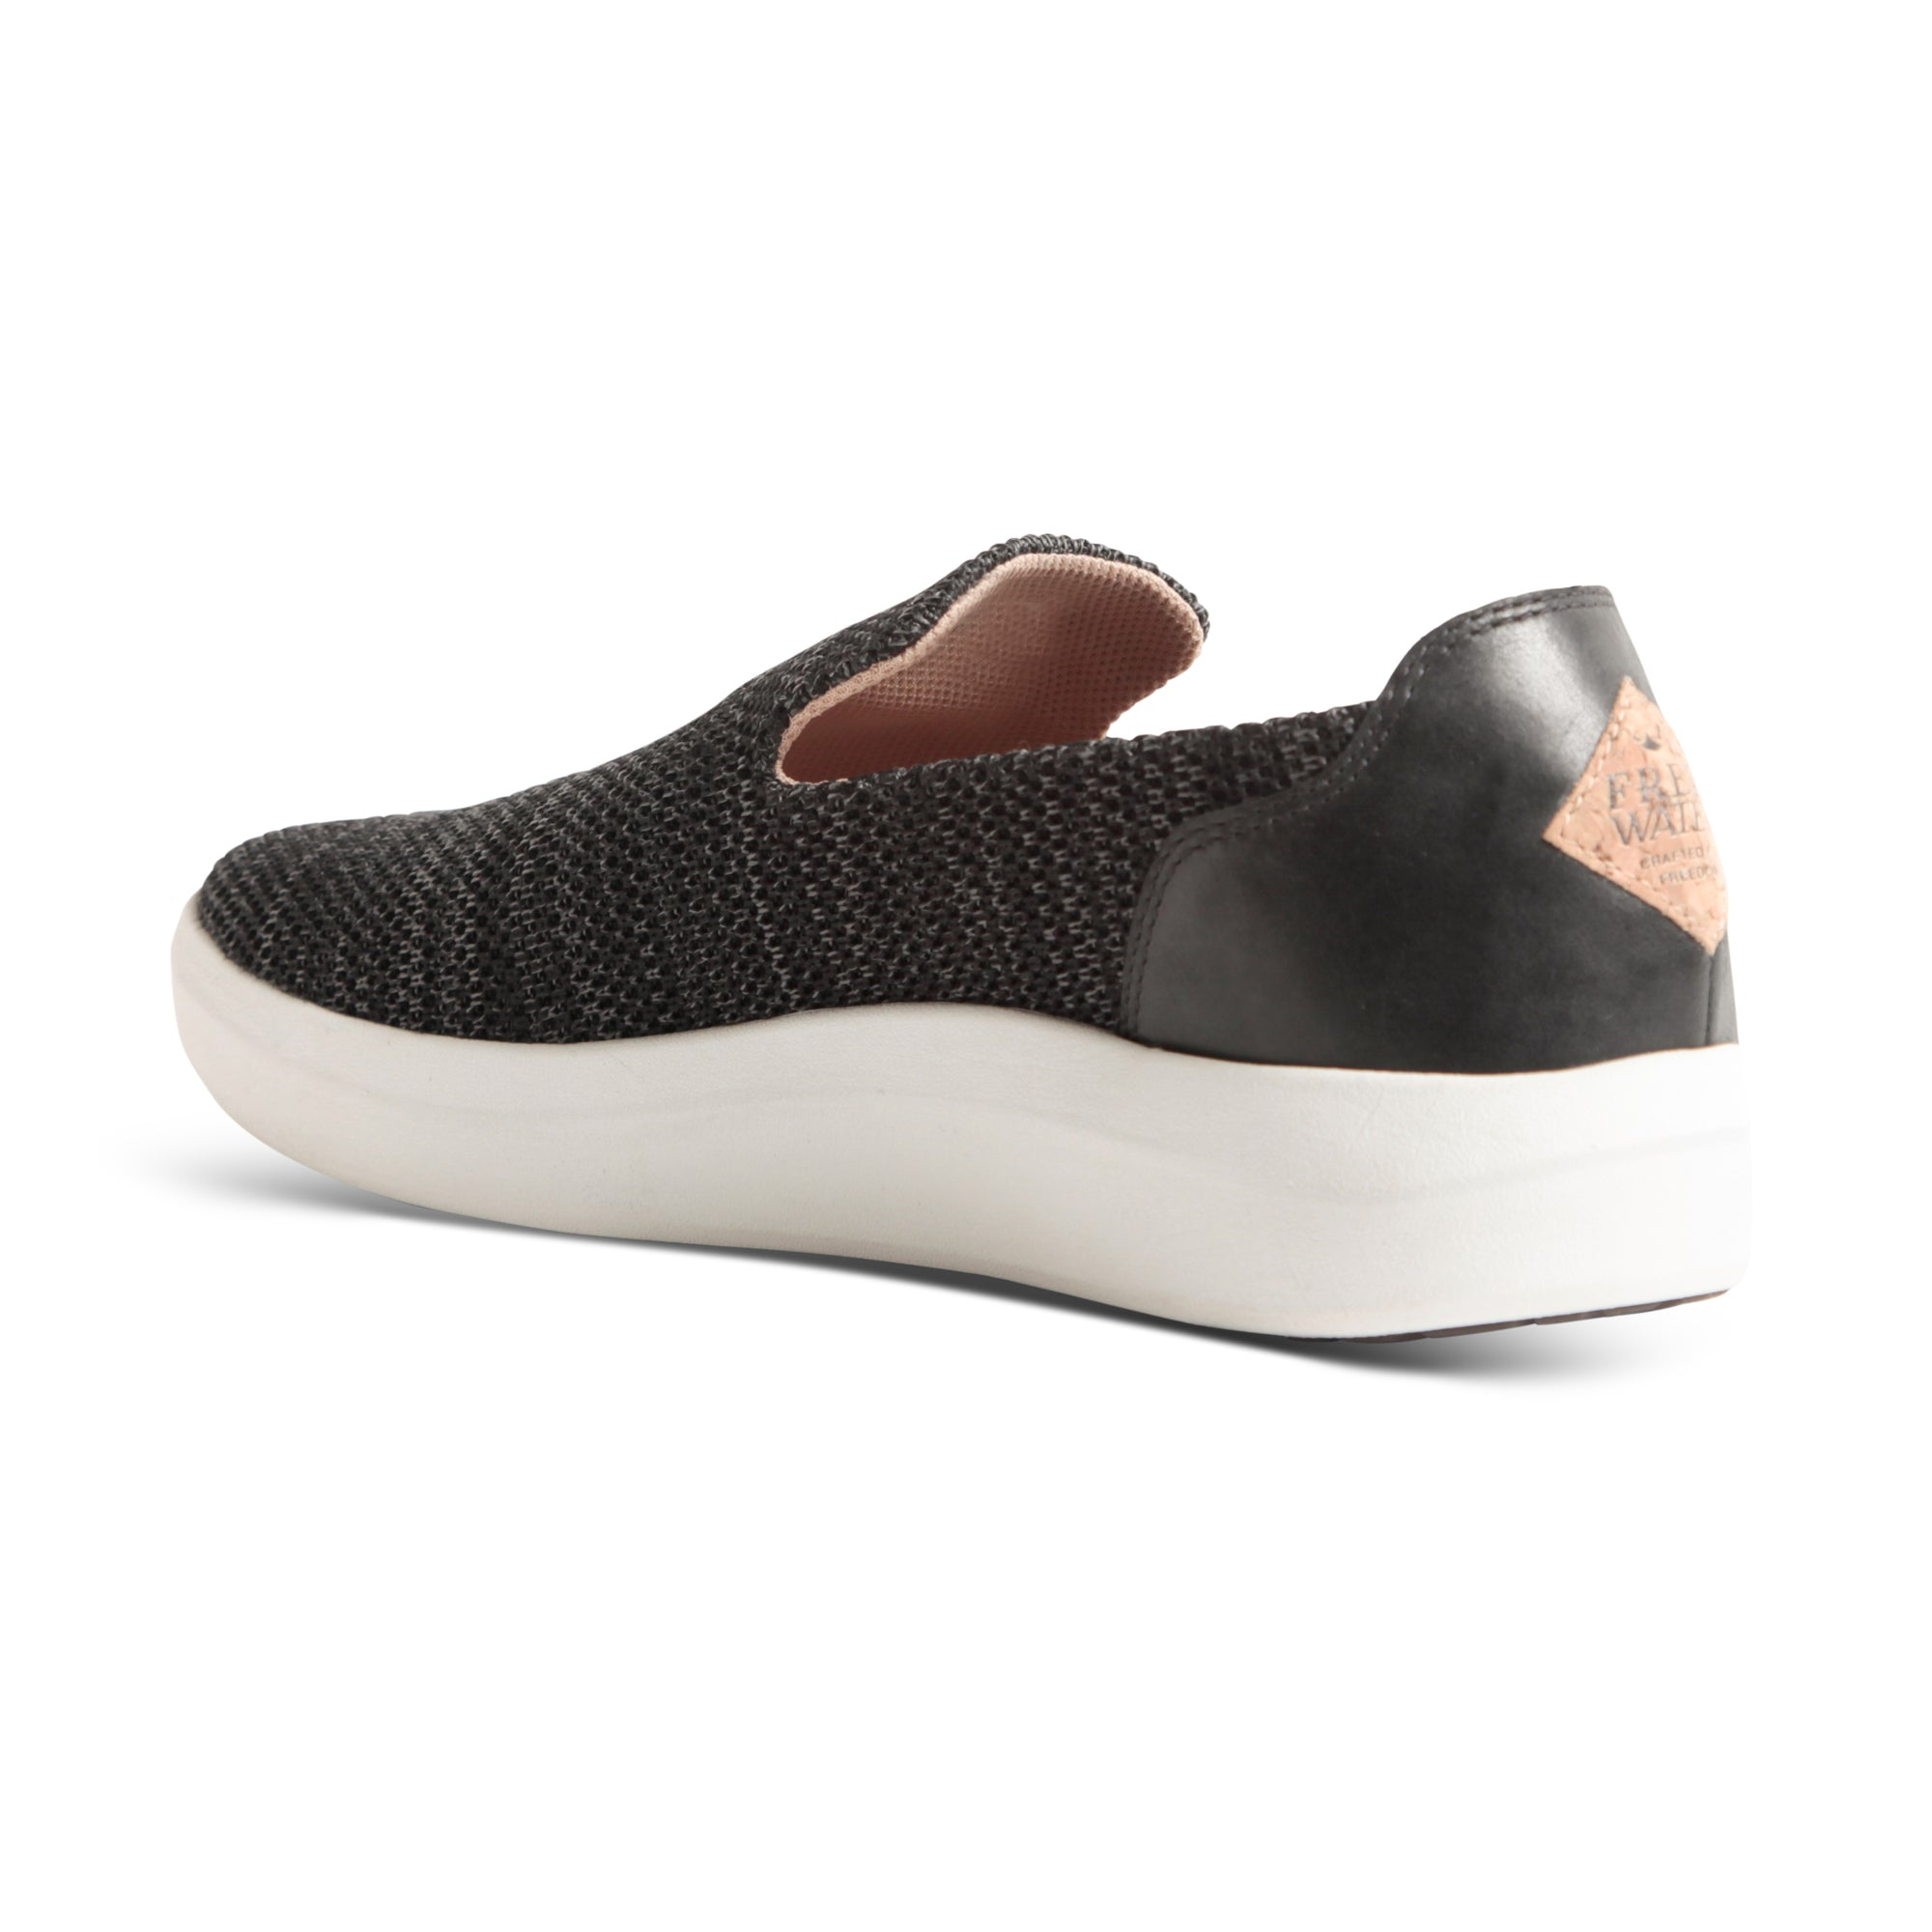 TRVL Slip On - Black